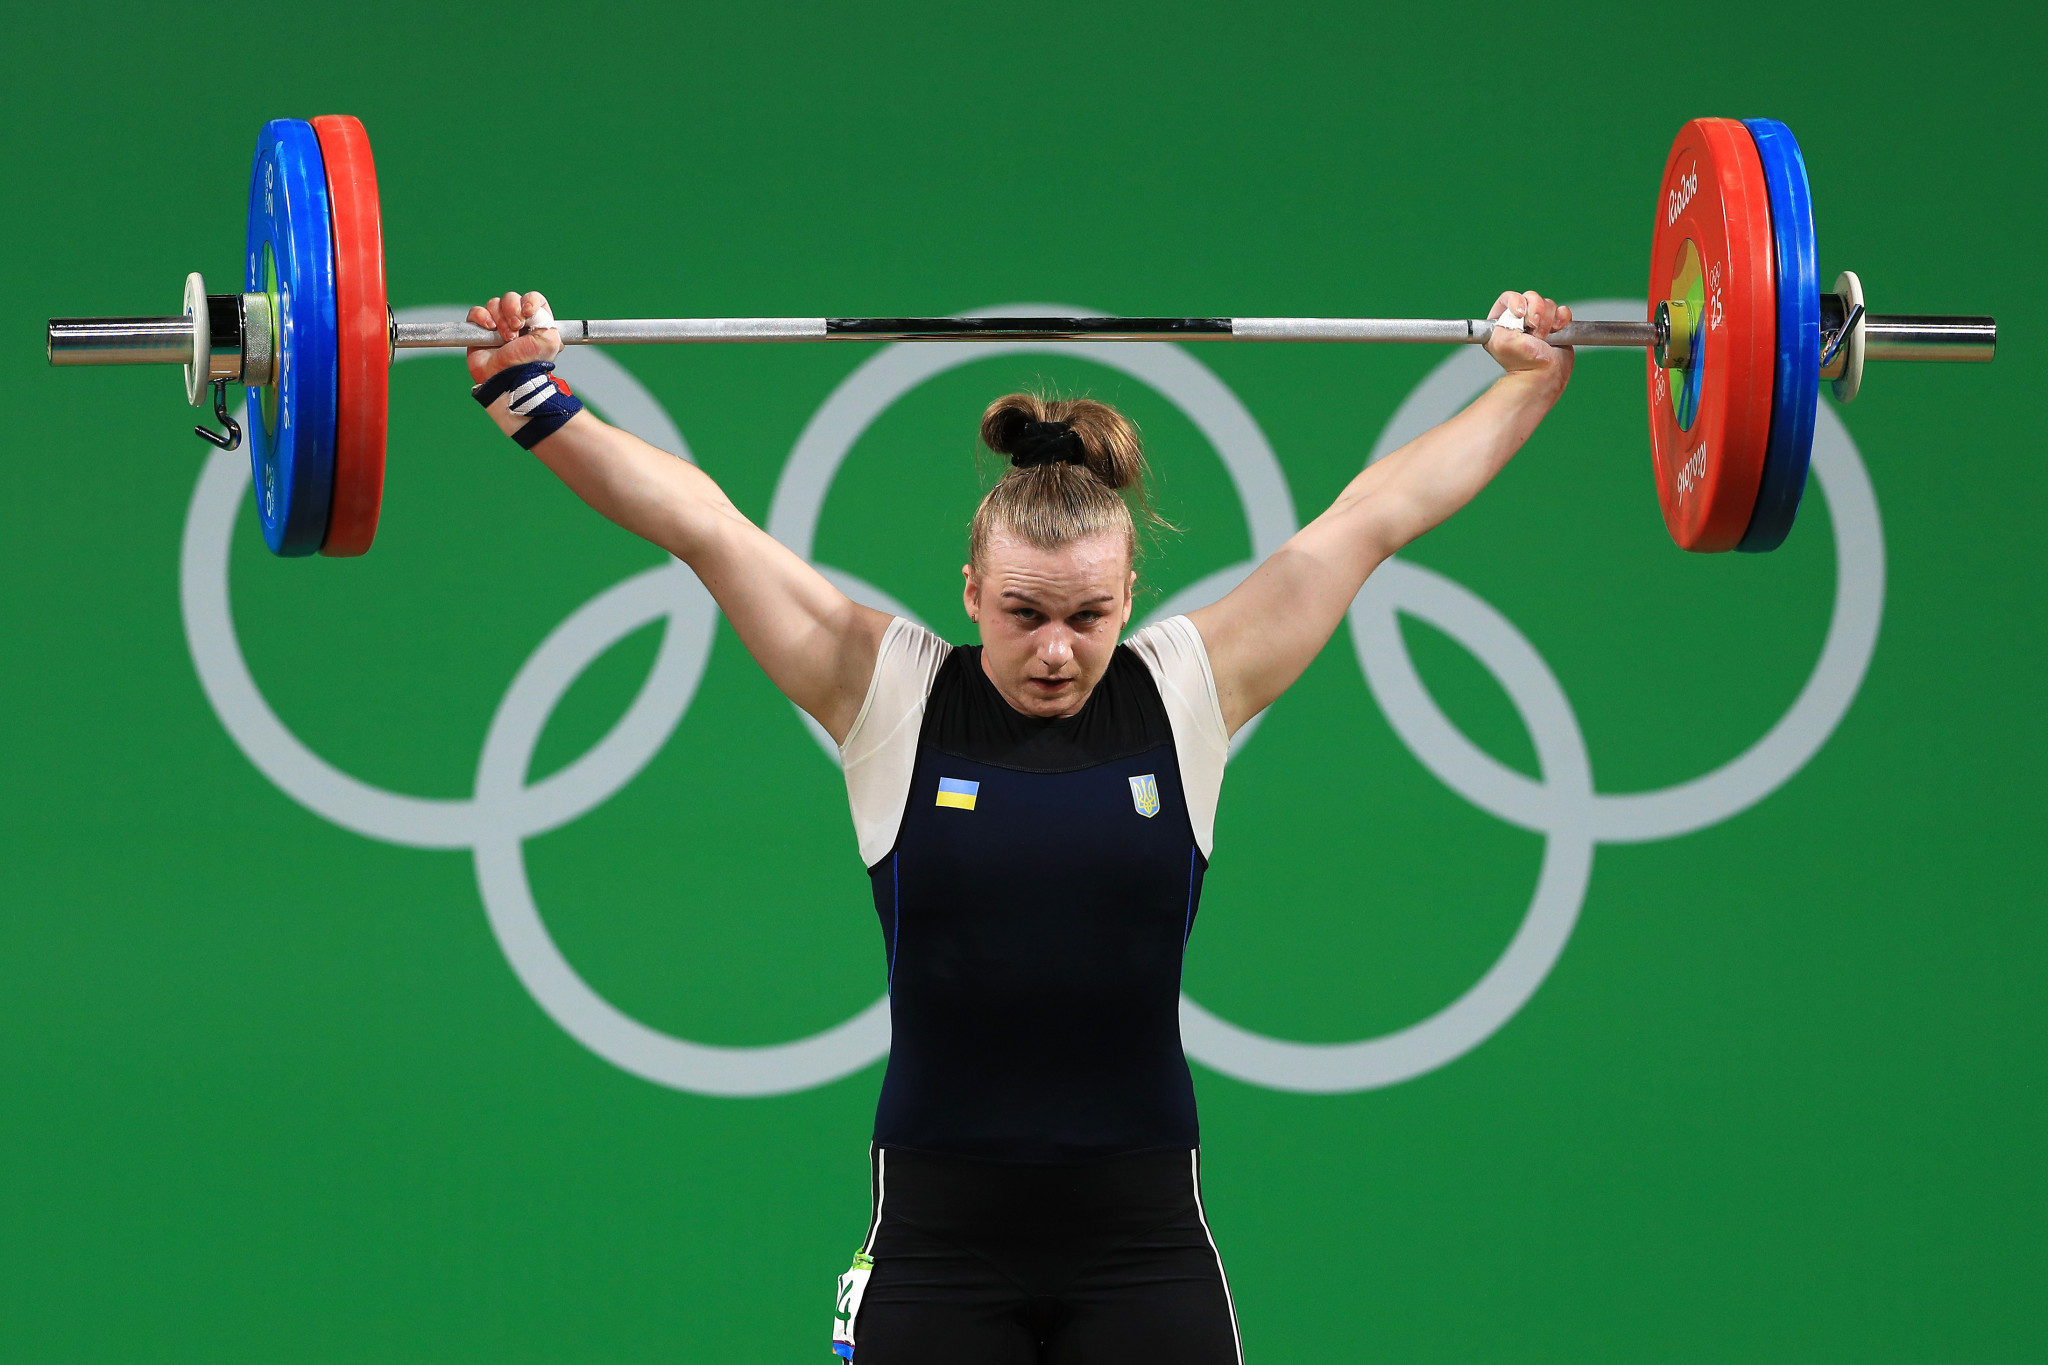 Dekha benefits from Valentin's absence to win controversial European Weightlifting Championships gold